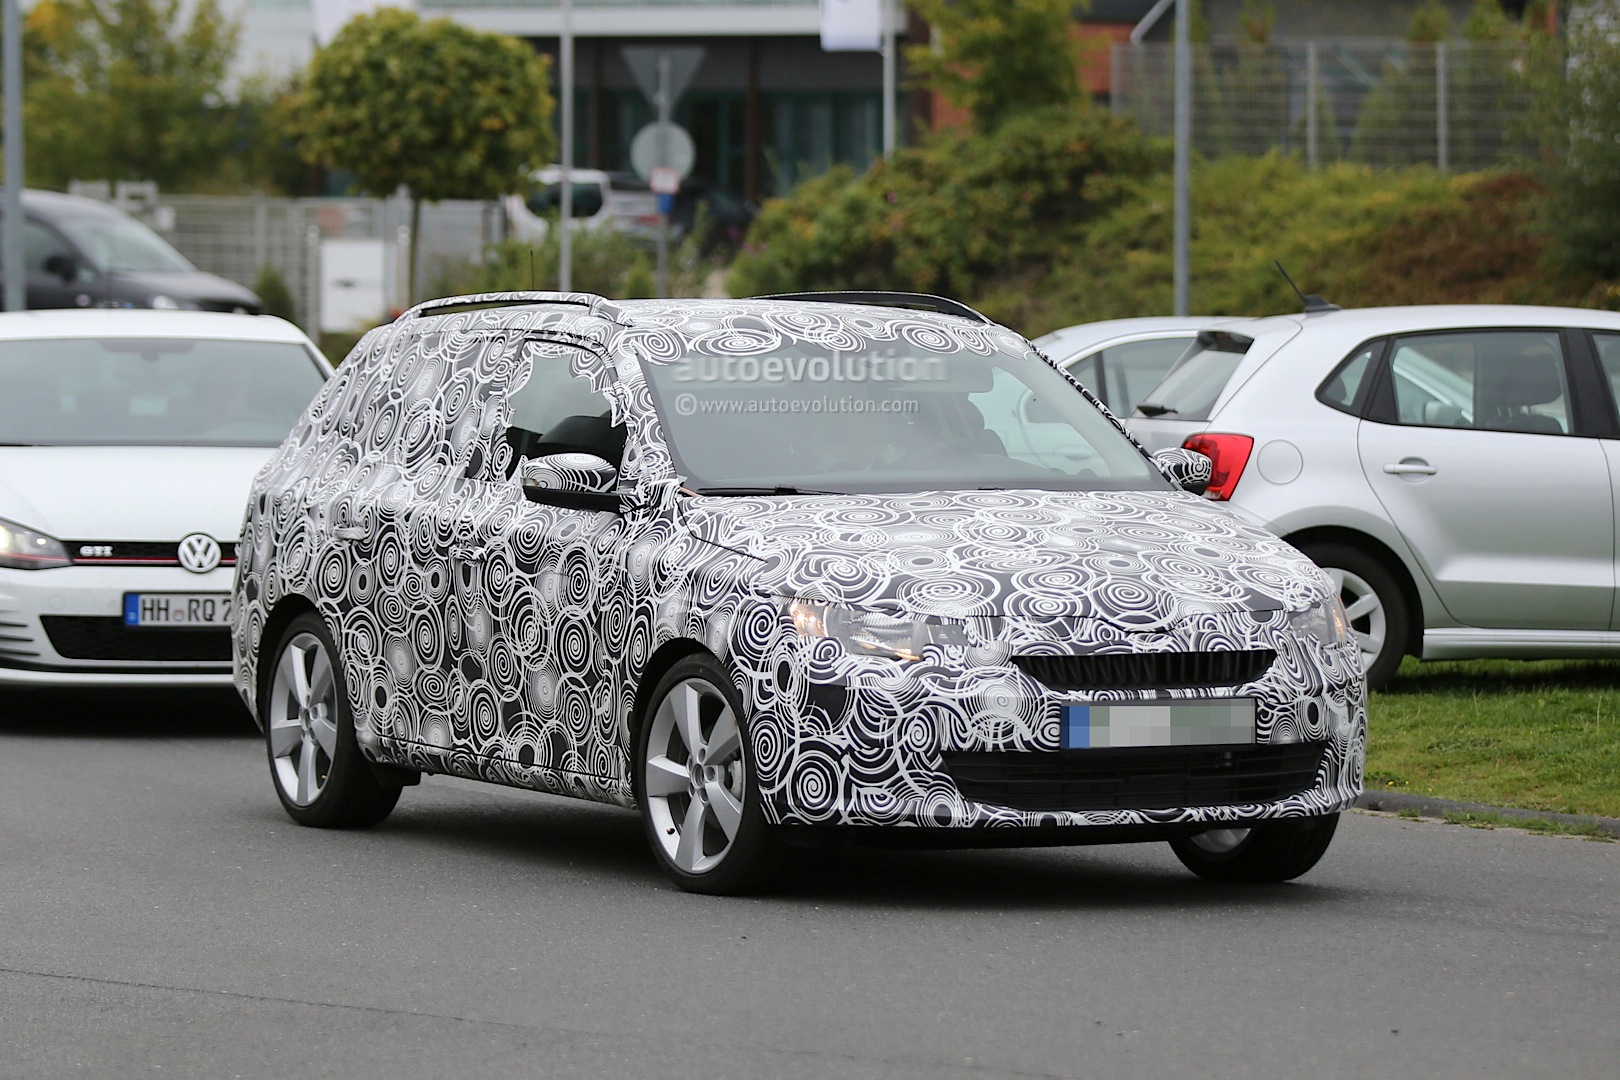 Different Suv Models >> New Skoda Fabia Combi Spied Testing at Nurburgring ahead of 2015 Debut - autoevolution